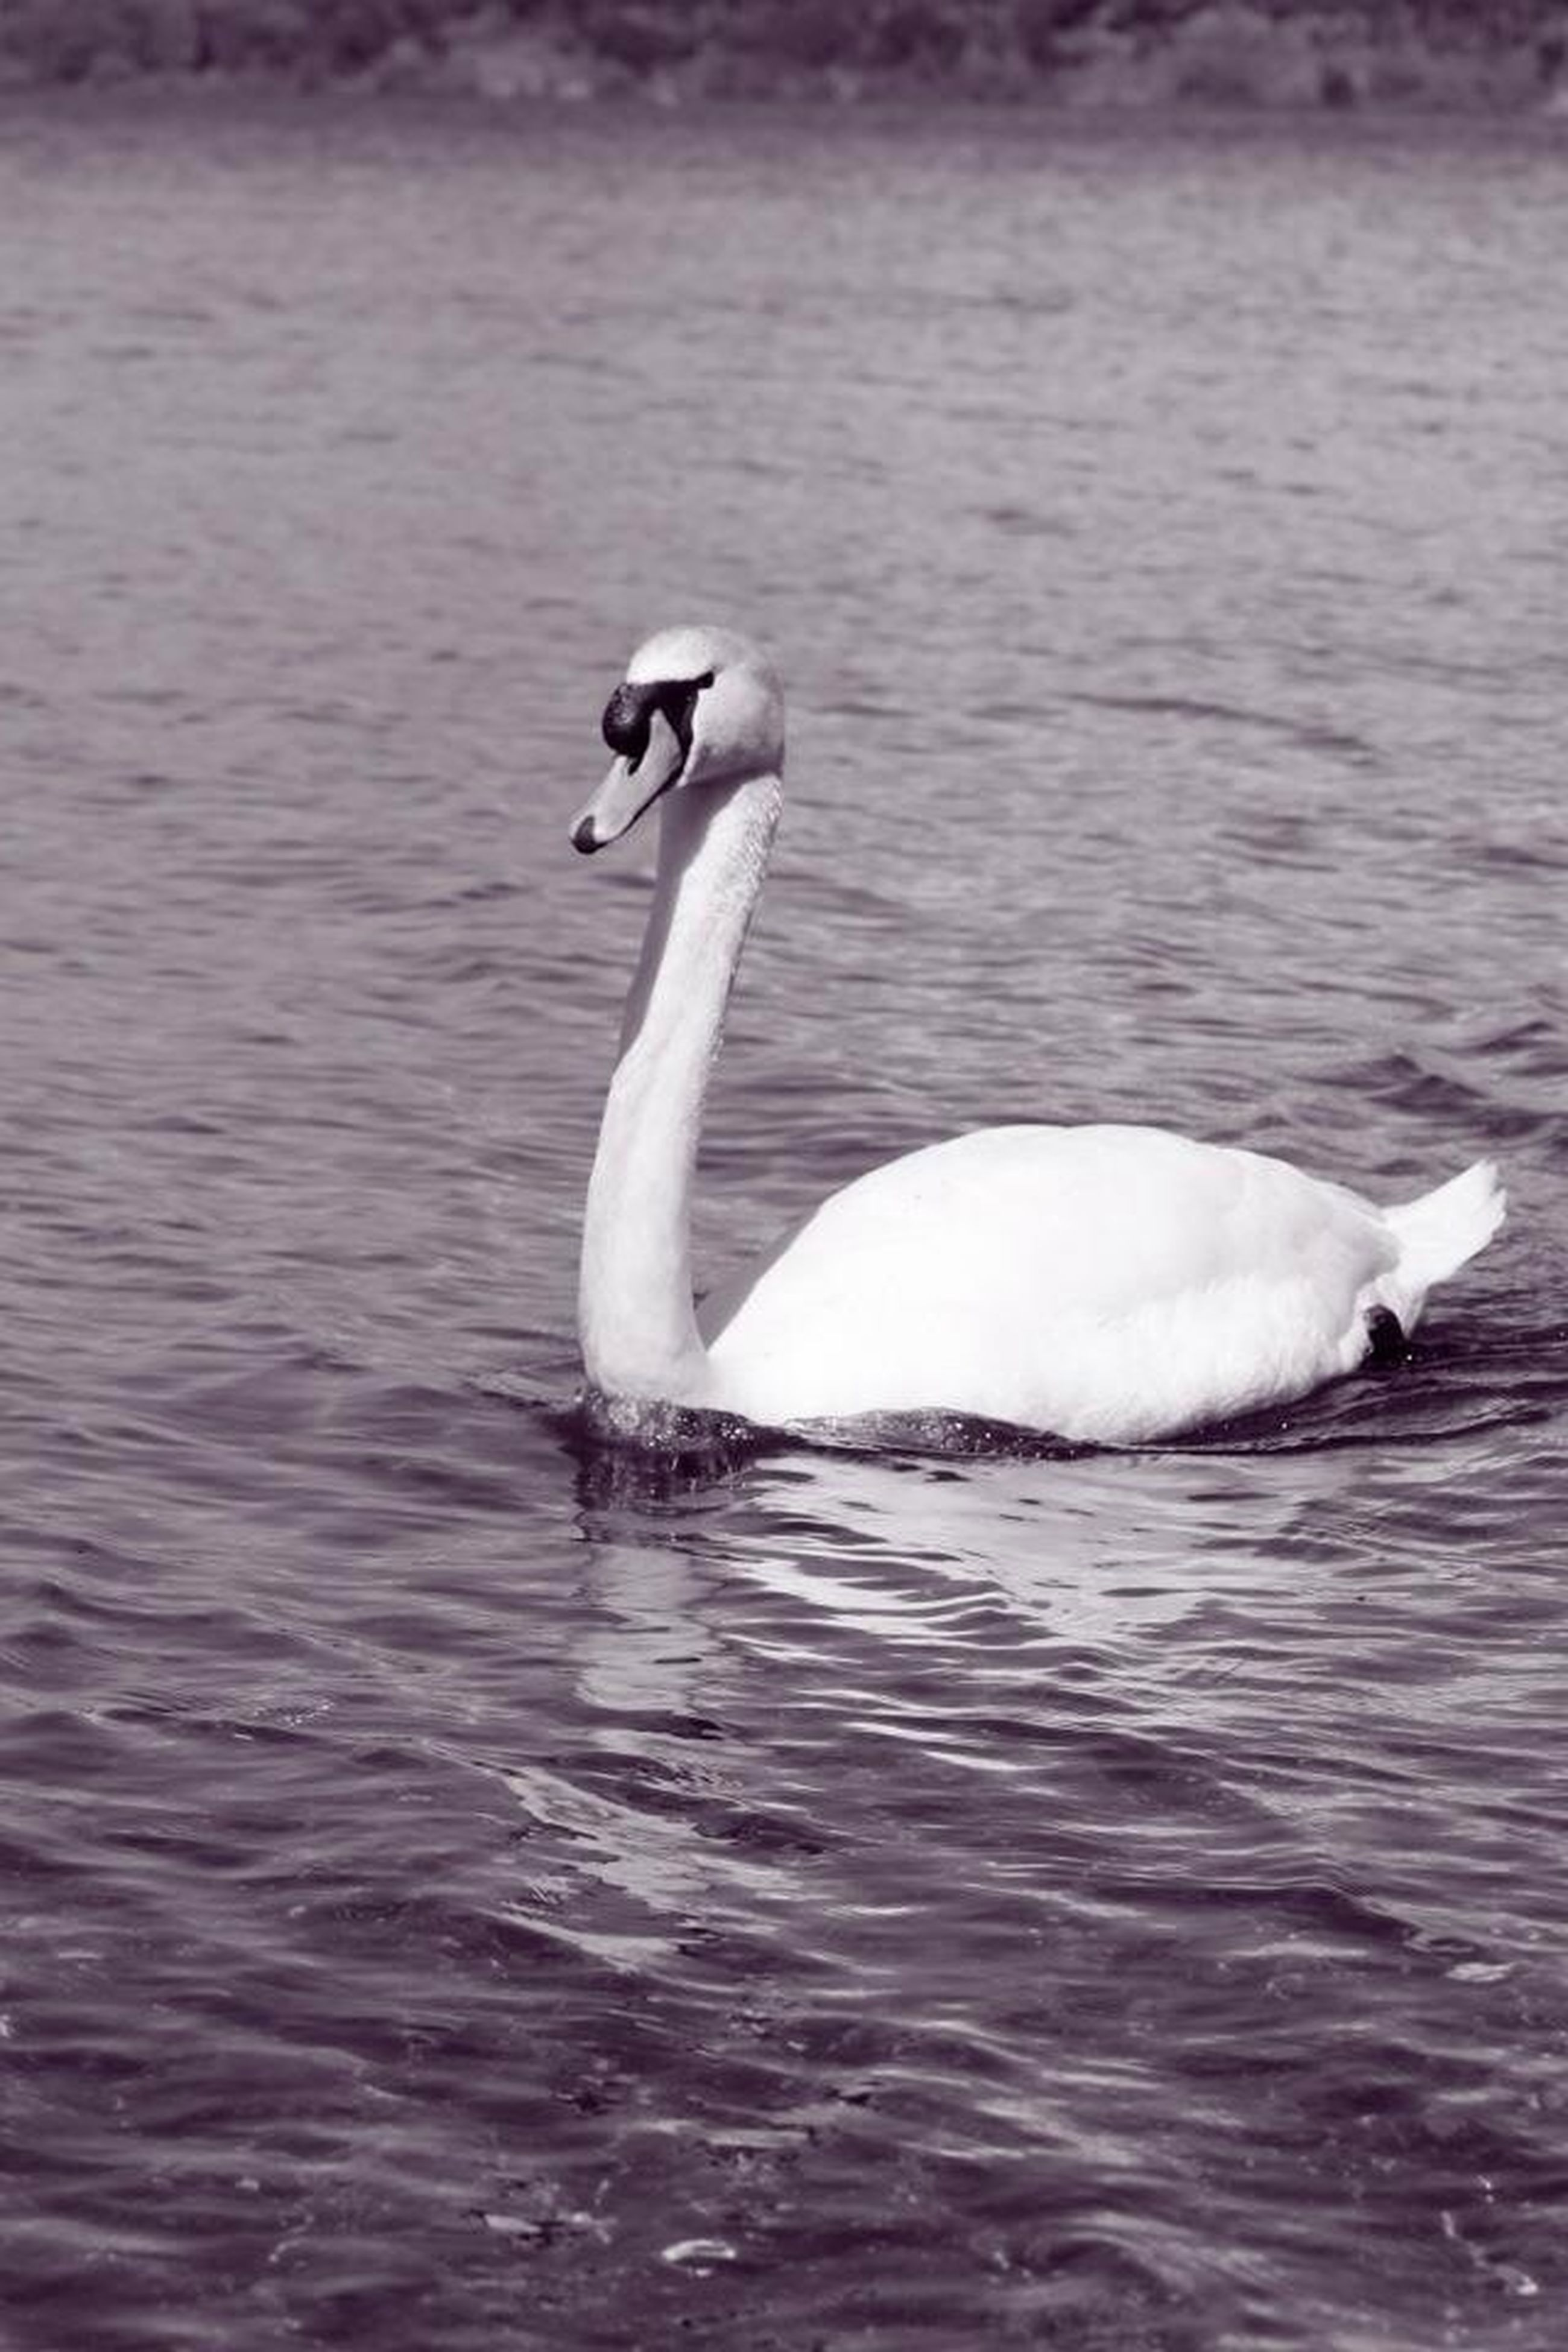 animal themes, bird, animals in the wild, water, wildlife, swan, one animal, waterfront, swimming, lake, rippled, white color, water bird, beak, nature, two animals, side view, outdoors, animal, floating on water